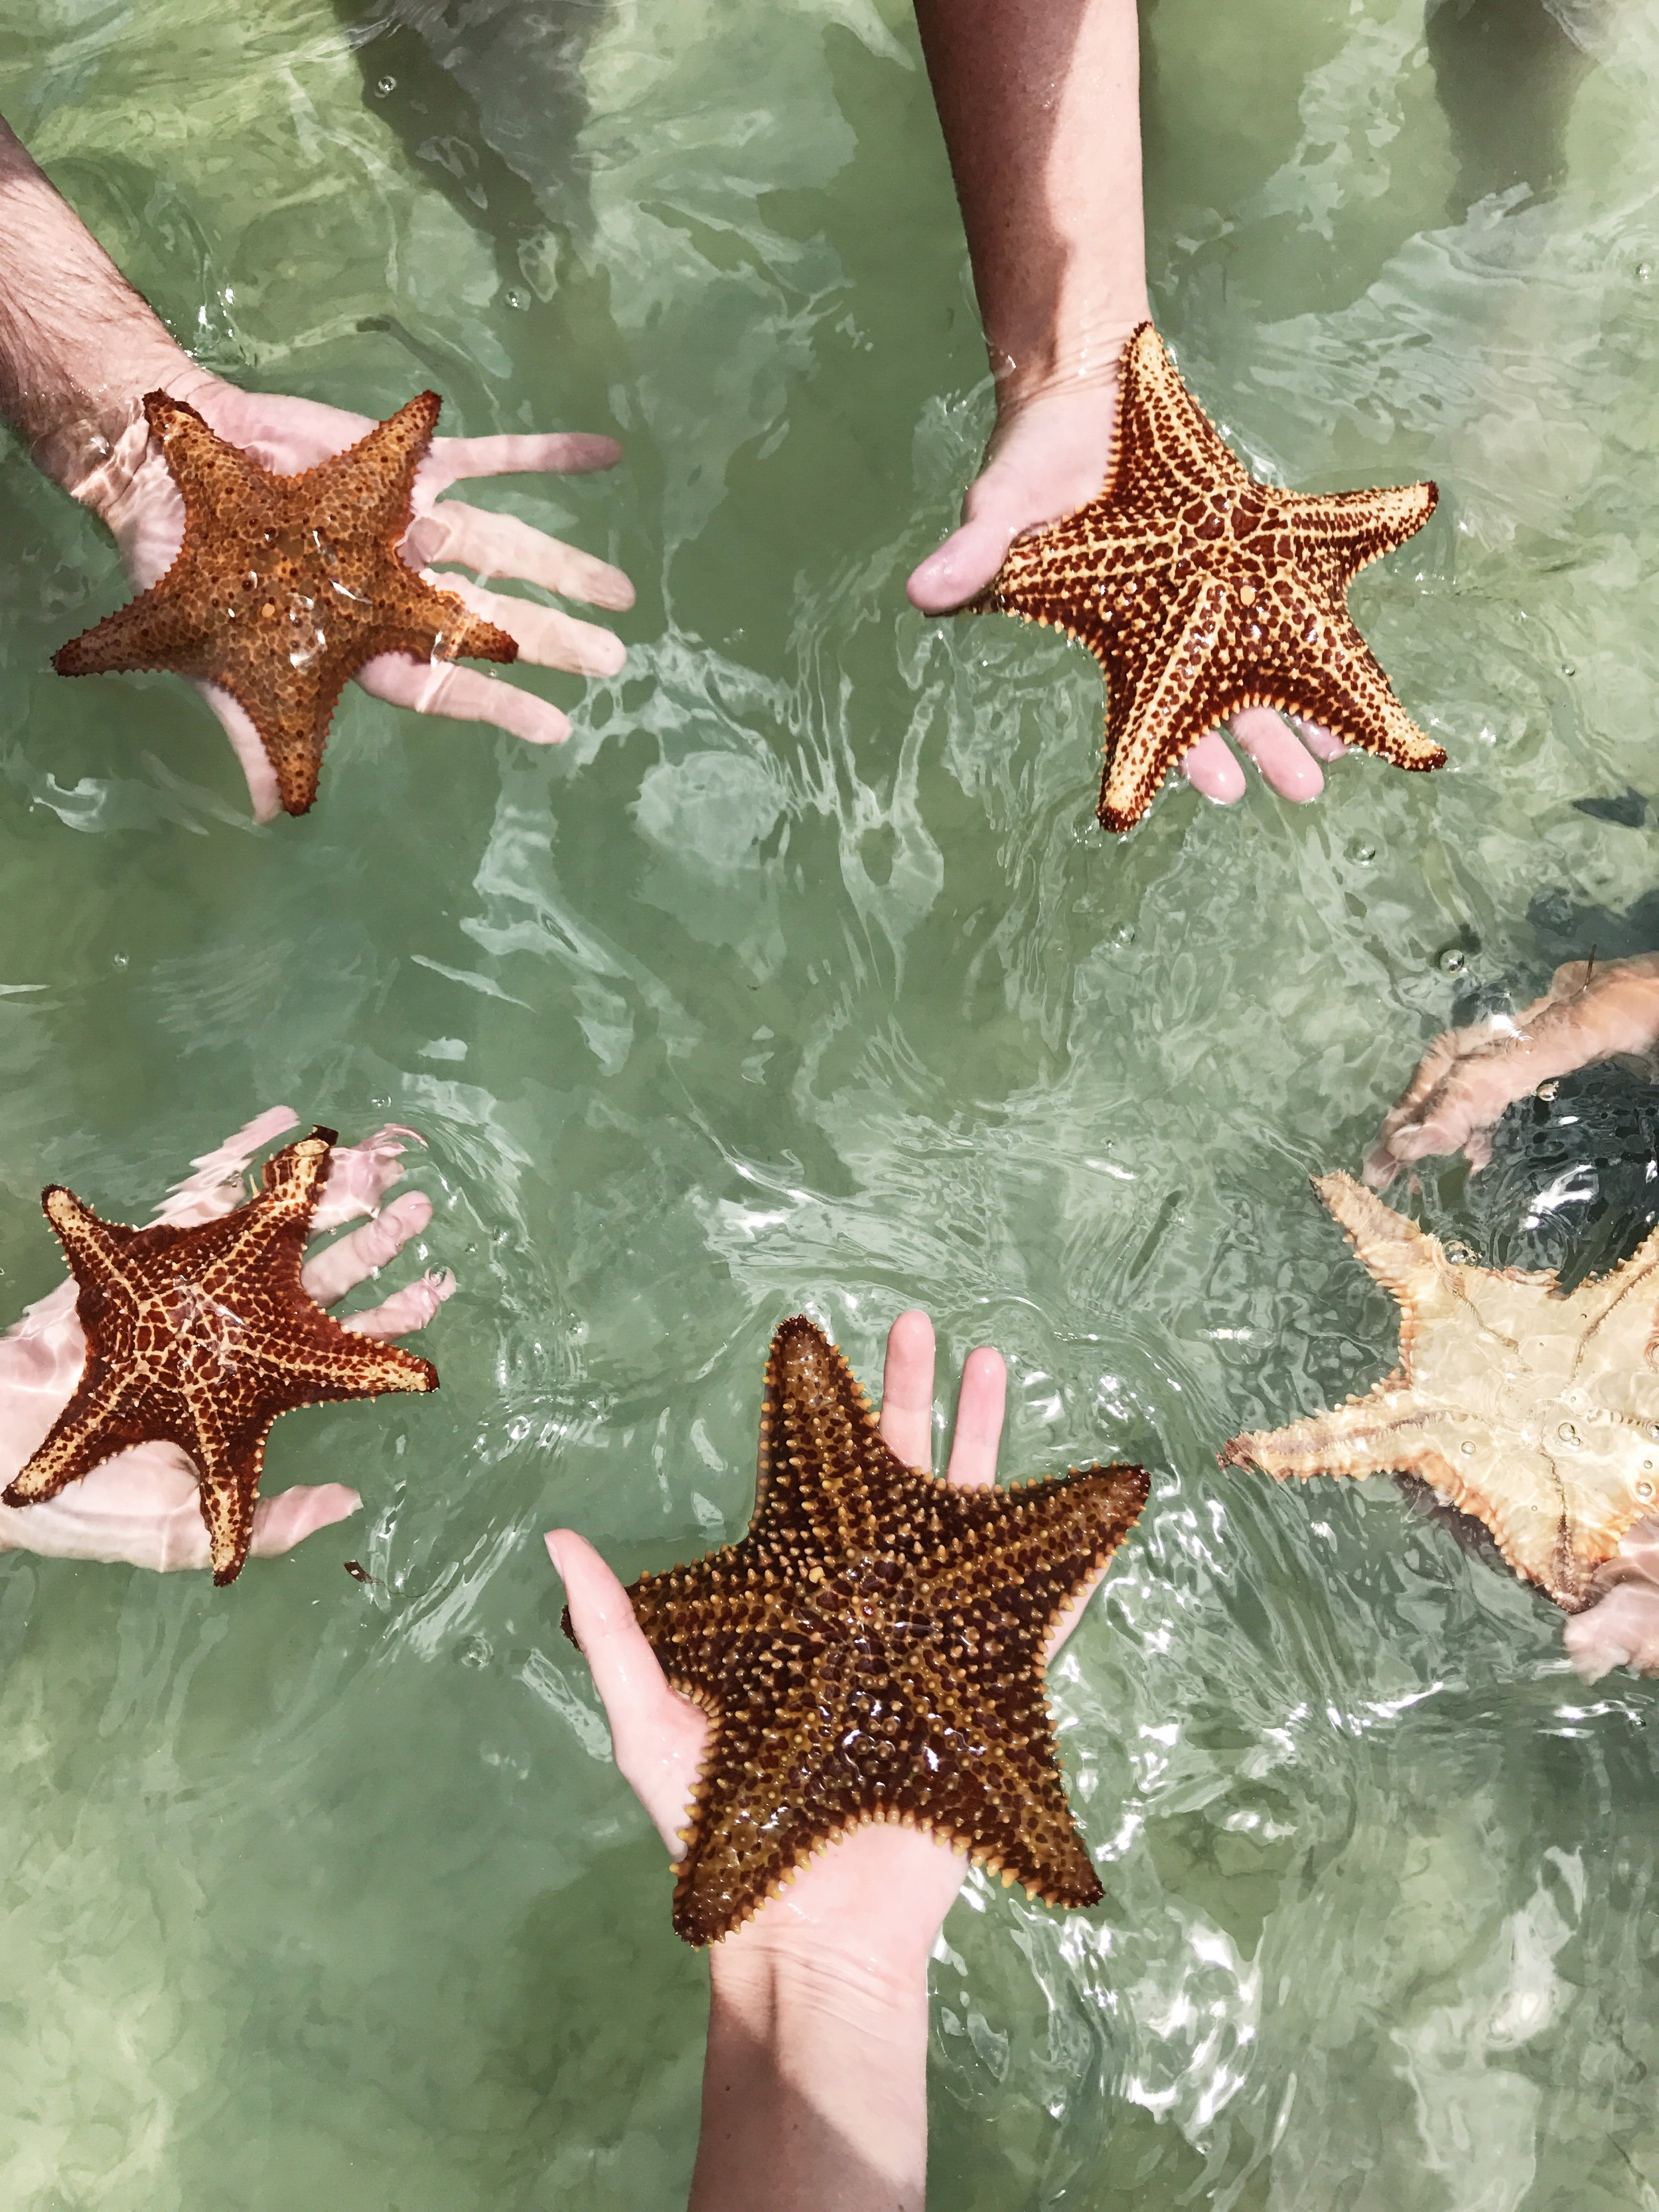 Grand Cayman starfish